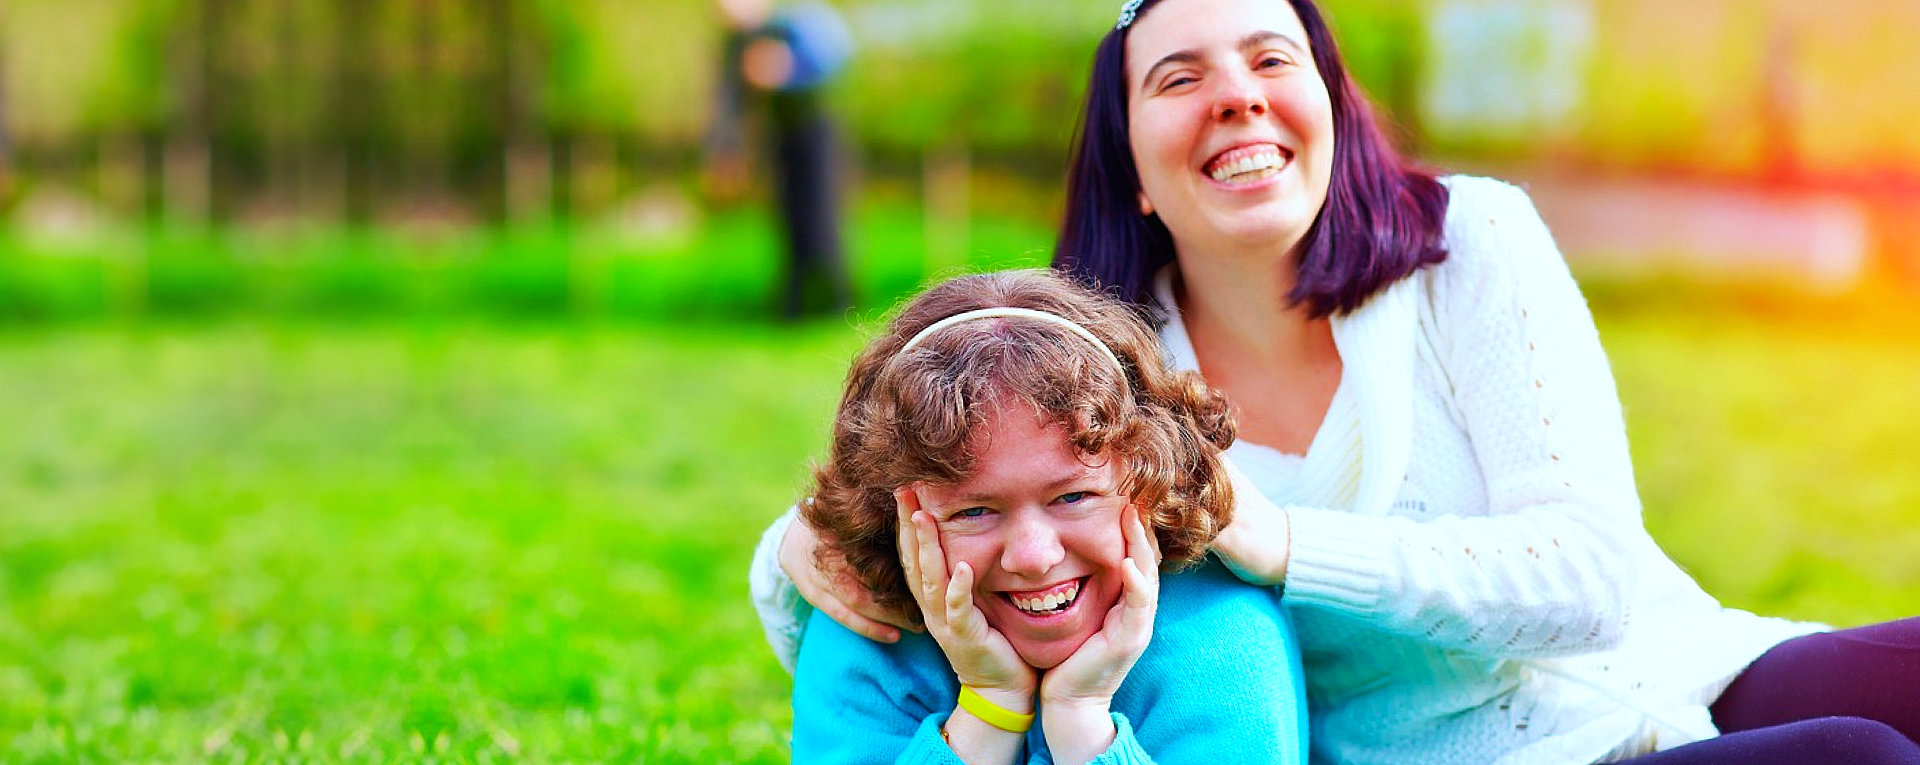 girl with autism with her caregiver